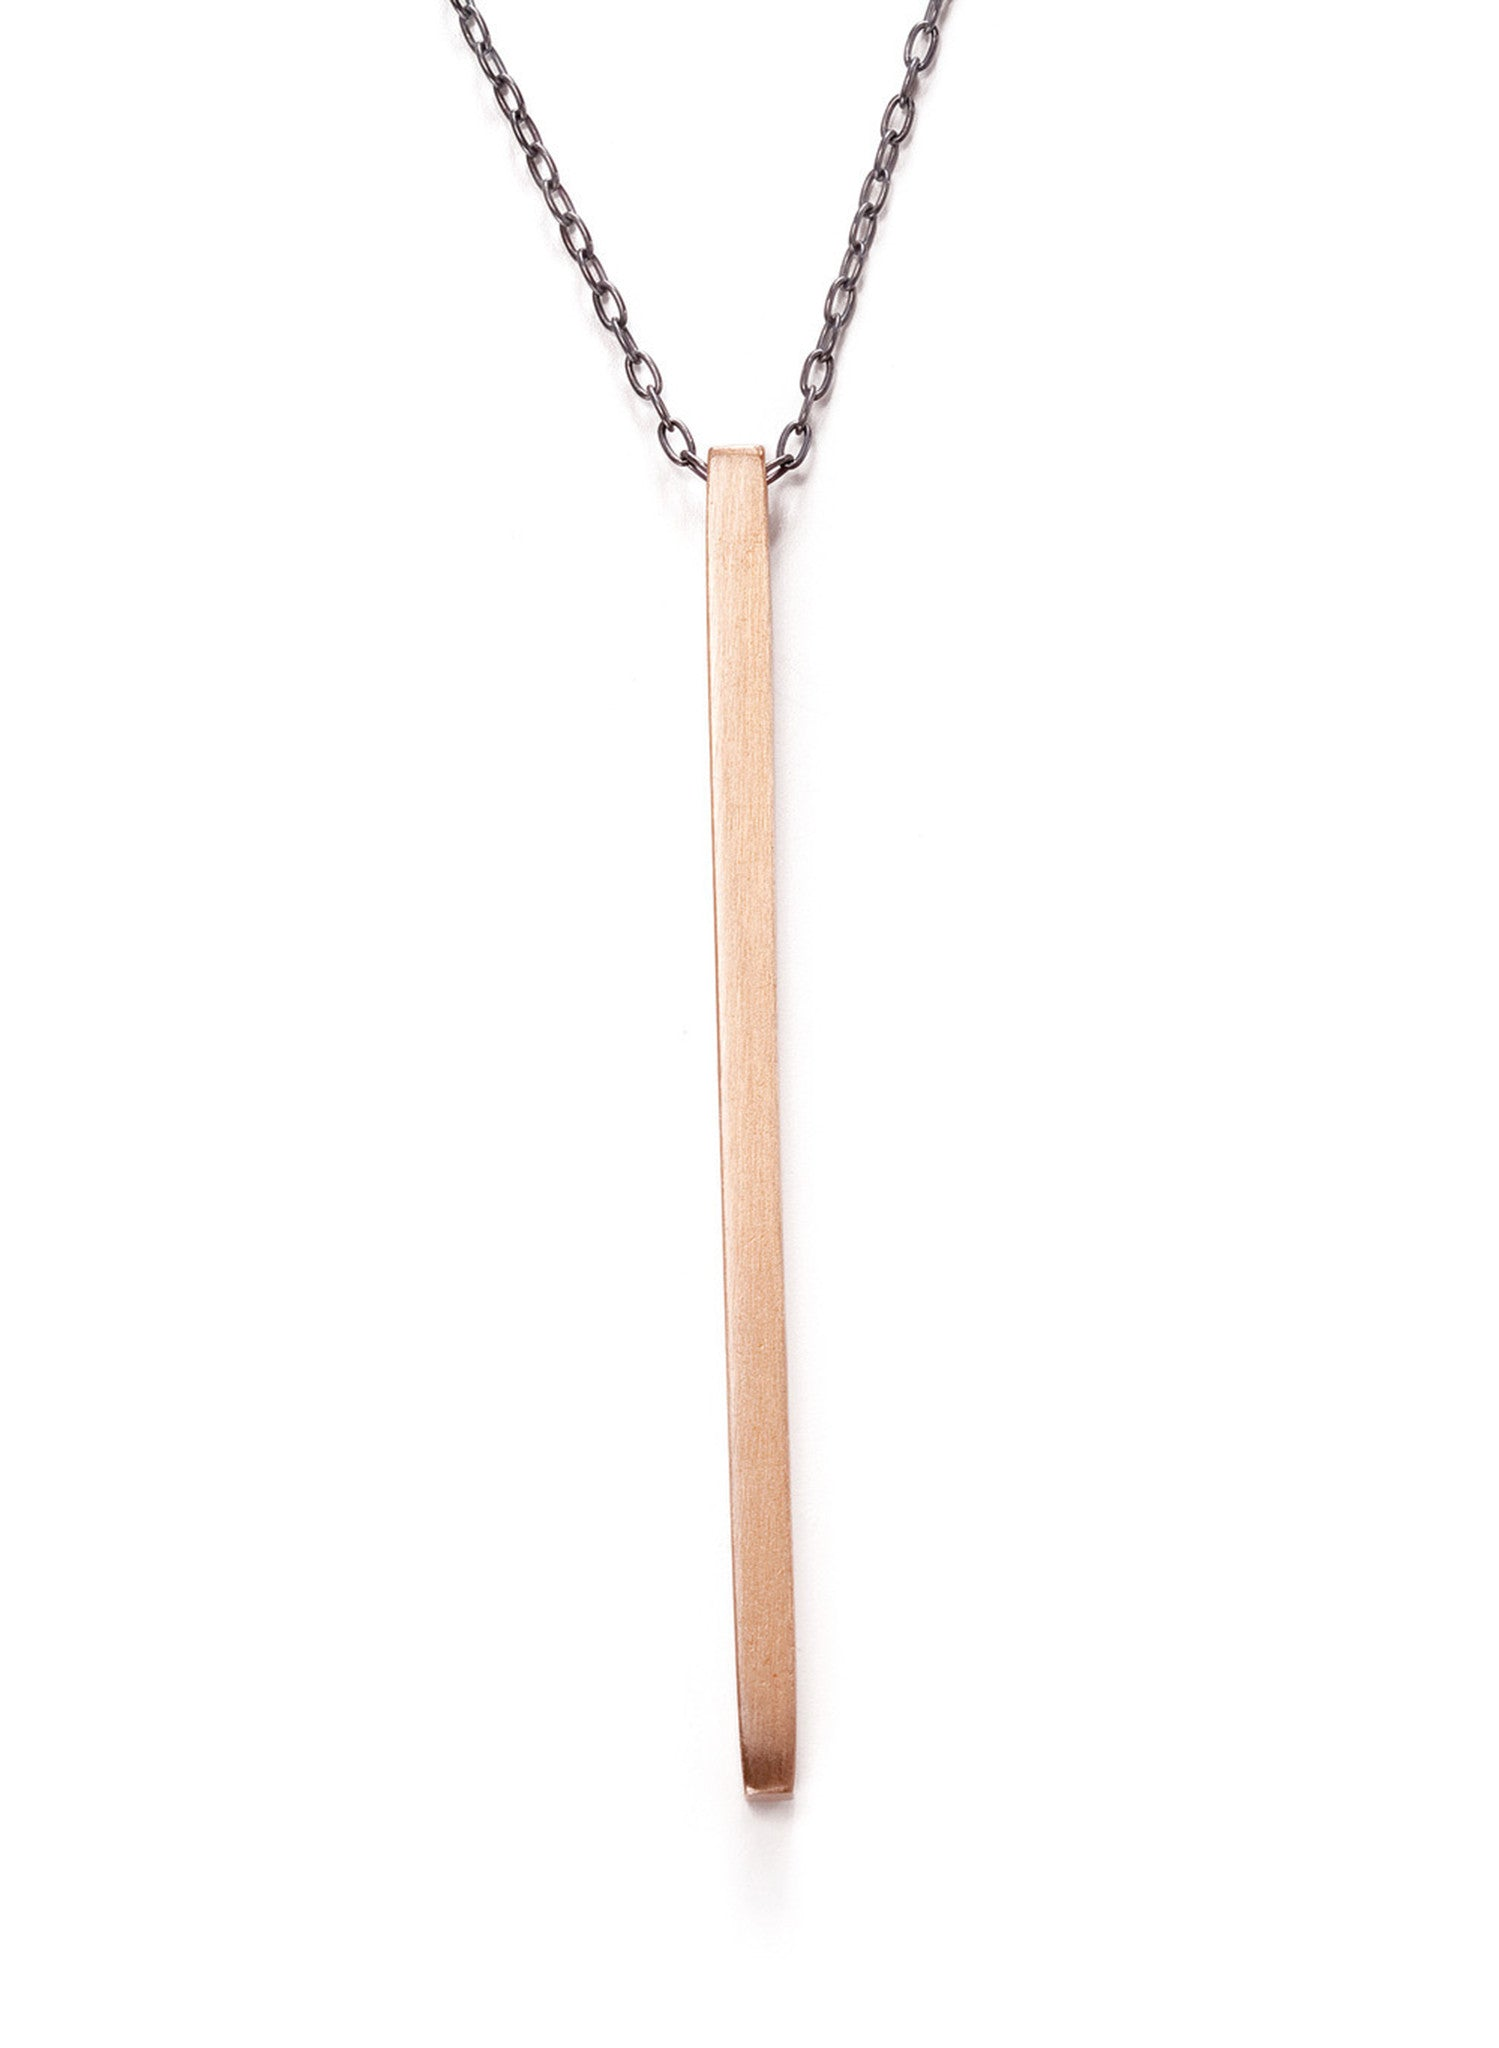 The Bronze Reck Bar Necklace